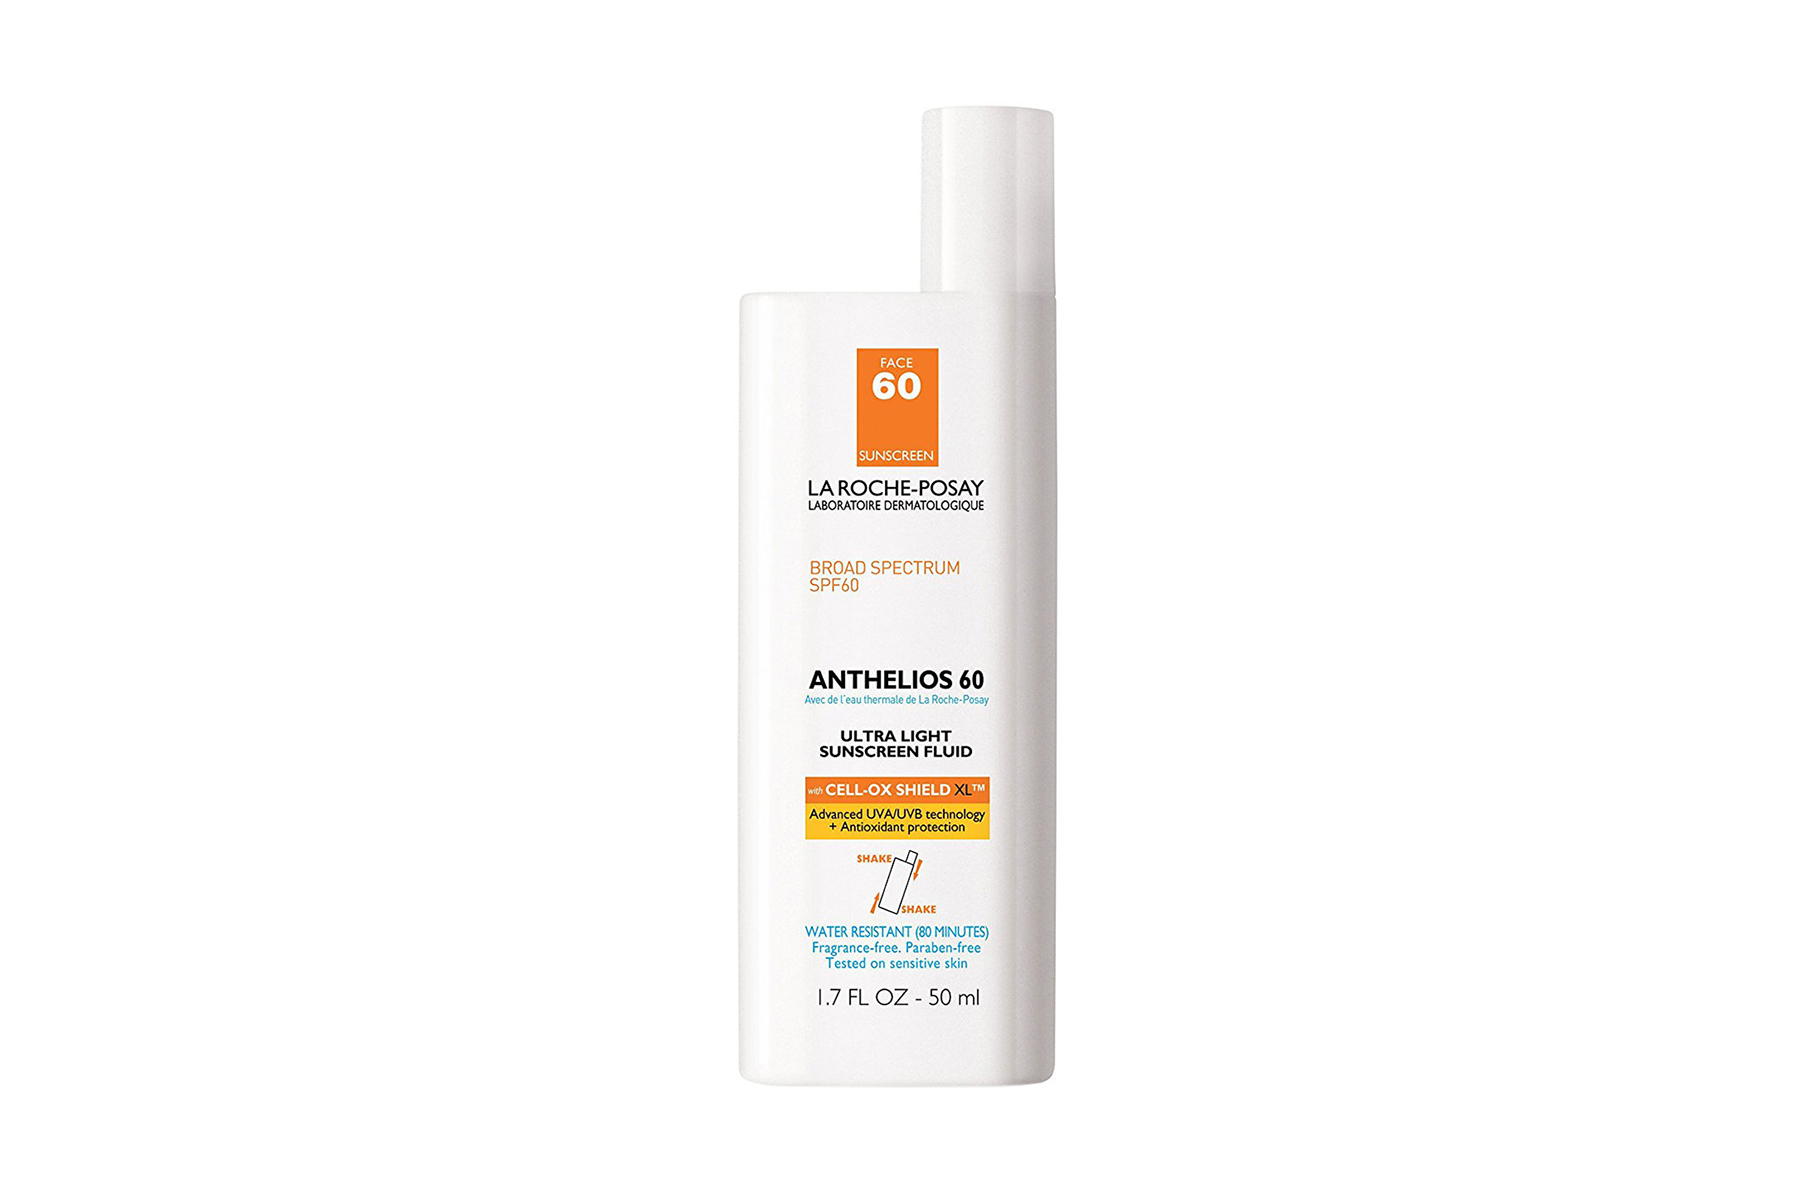 La Roche Posey Anthelios 60 Face Sunscreen